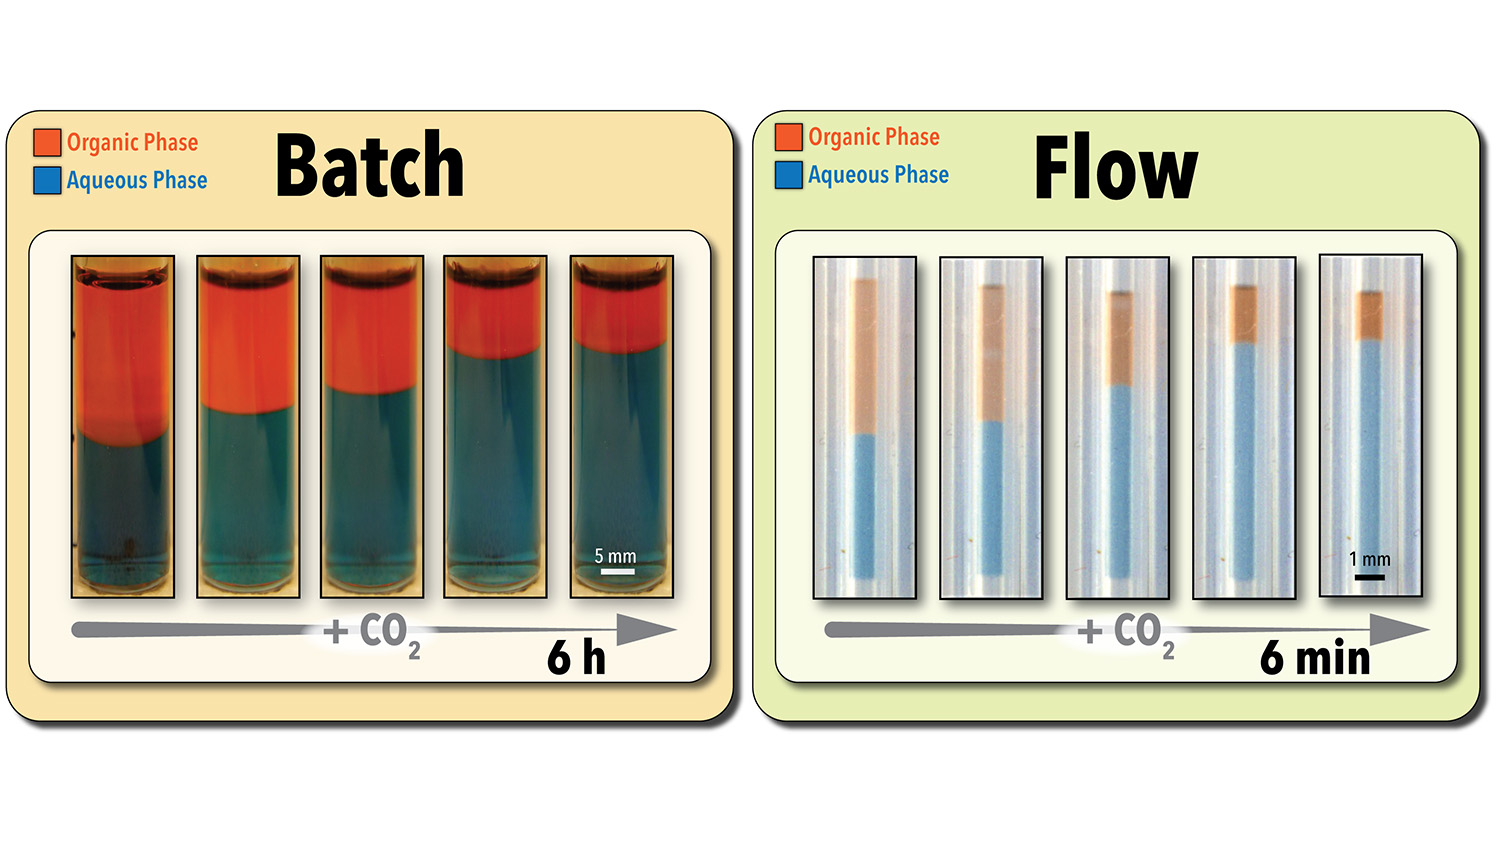 Comparison of results from batch and flow tests of switchable solvents